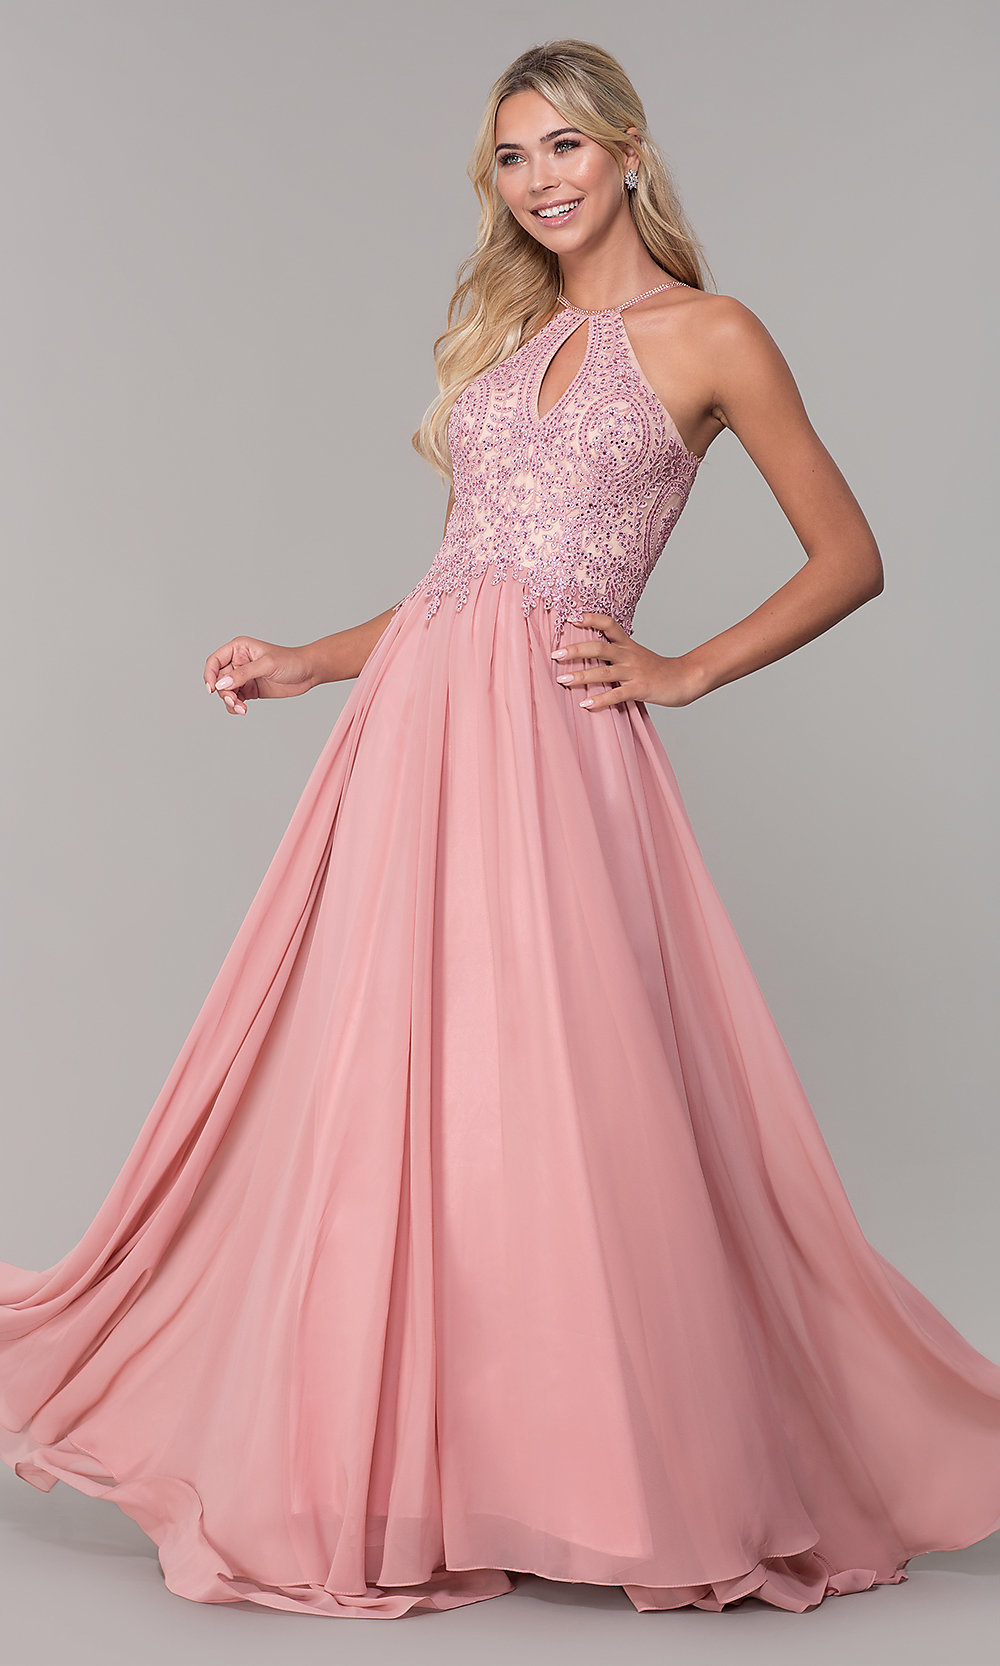 4d2d6bba806eb Image of a-line long prom dress with high-neck beaded bodice. Style. Tap to  expand